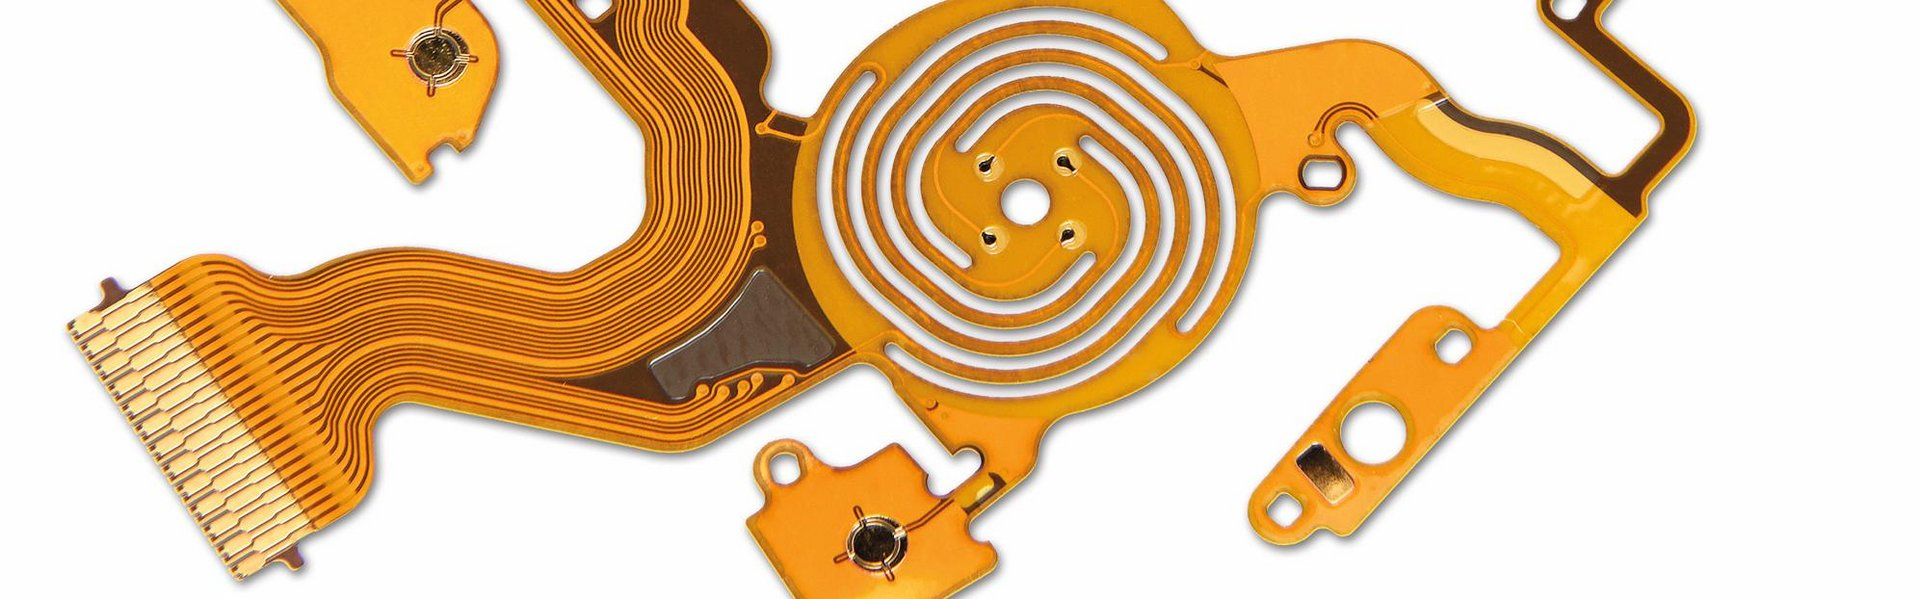 Laser Drilling and Cutting for PCB Shops